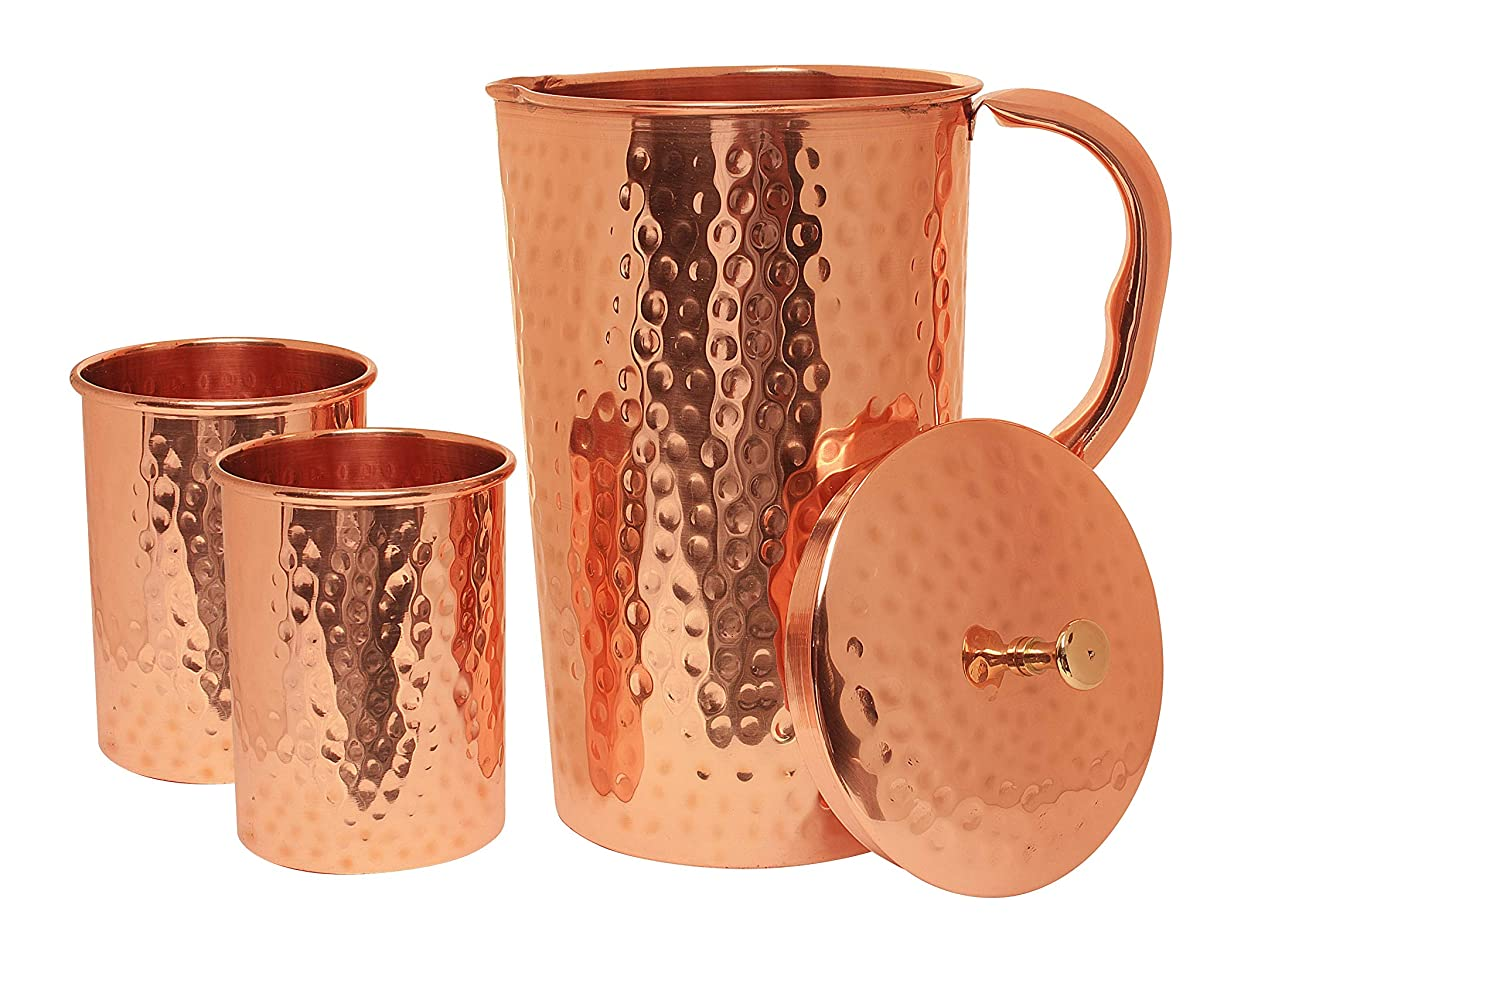 AVADOR Handcrafted 100% Pure Copper Jug Pitcher with 2 Glass Drinkware Hammered Finish Ayurveda Health Benefit